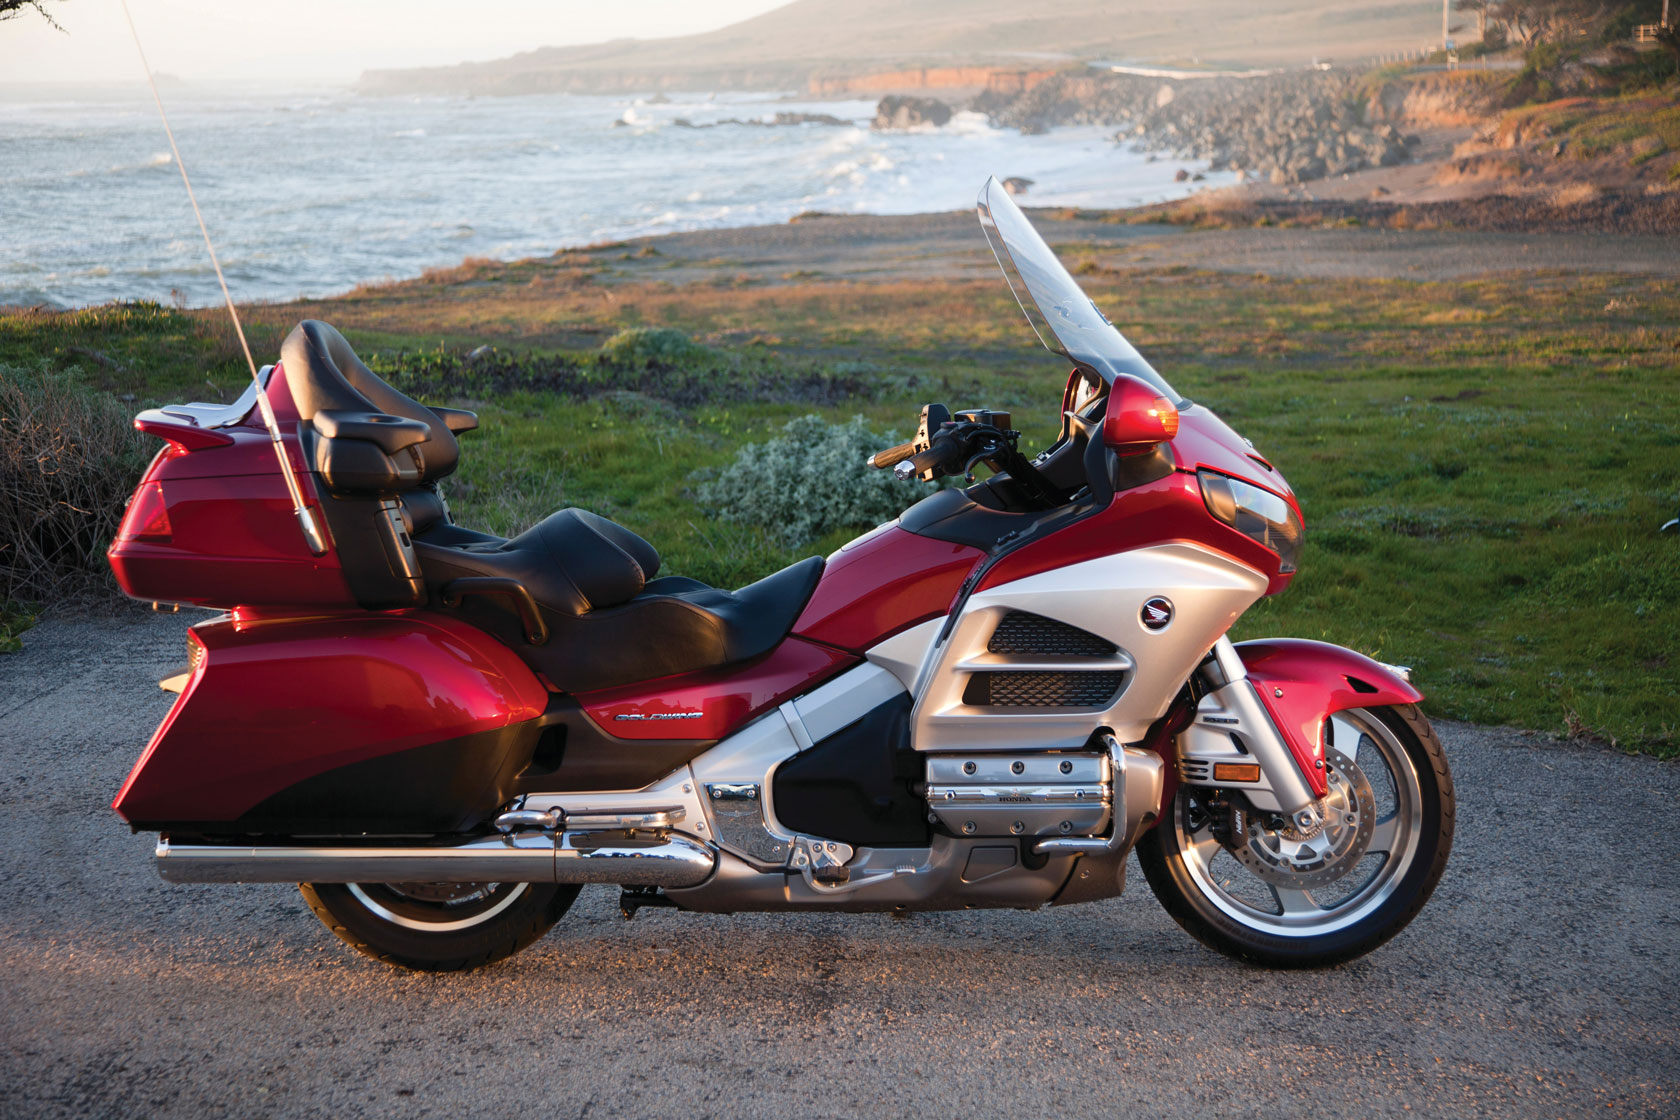 Honda GL 1800 Gold Wing 2013 images #83169